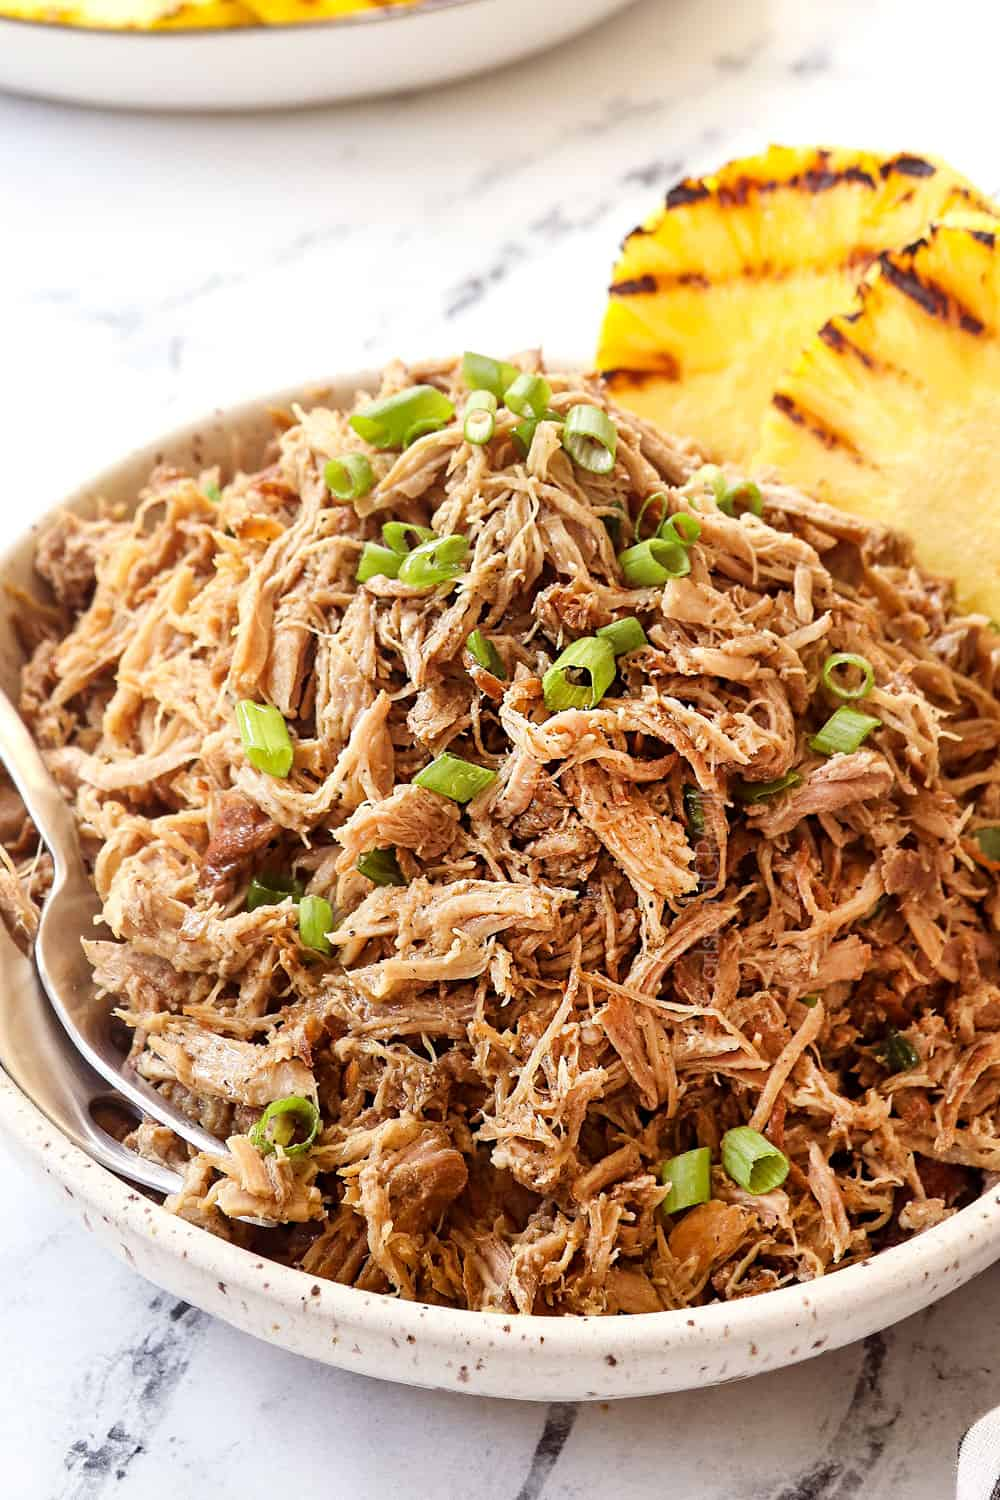 a bowl of Kalua pork recipe garnished with green onions